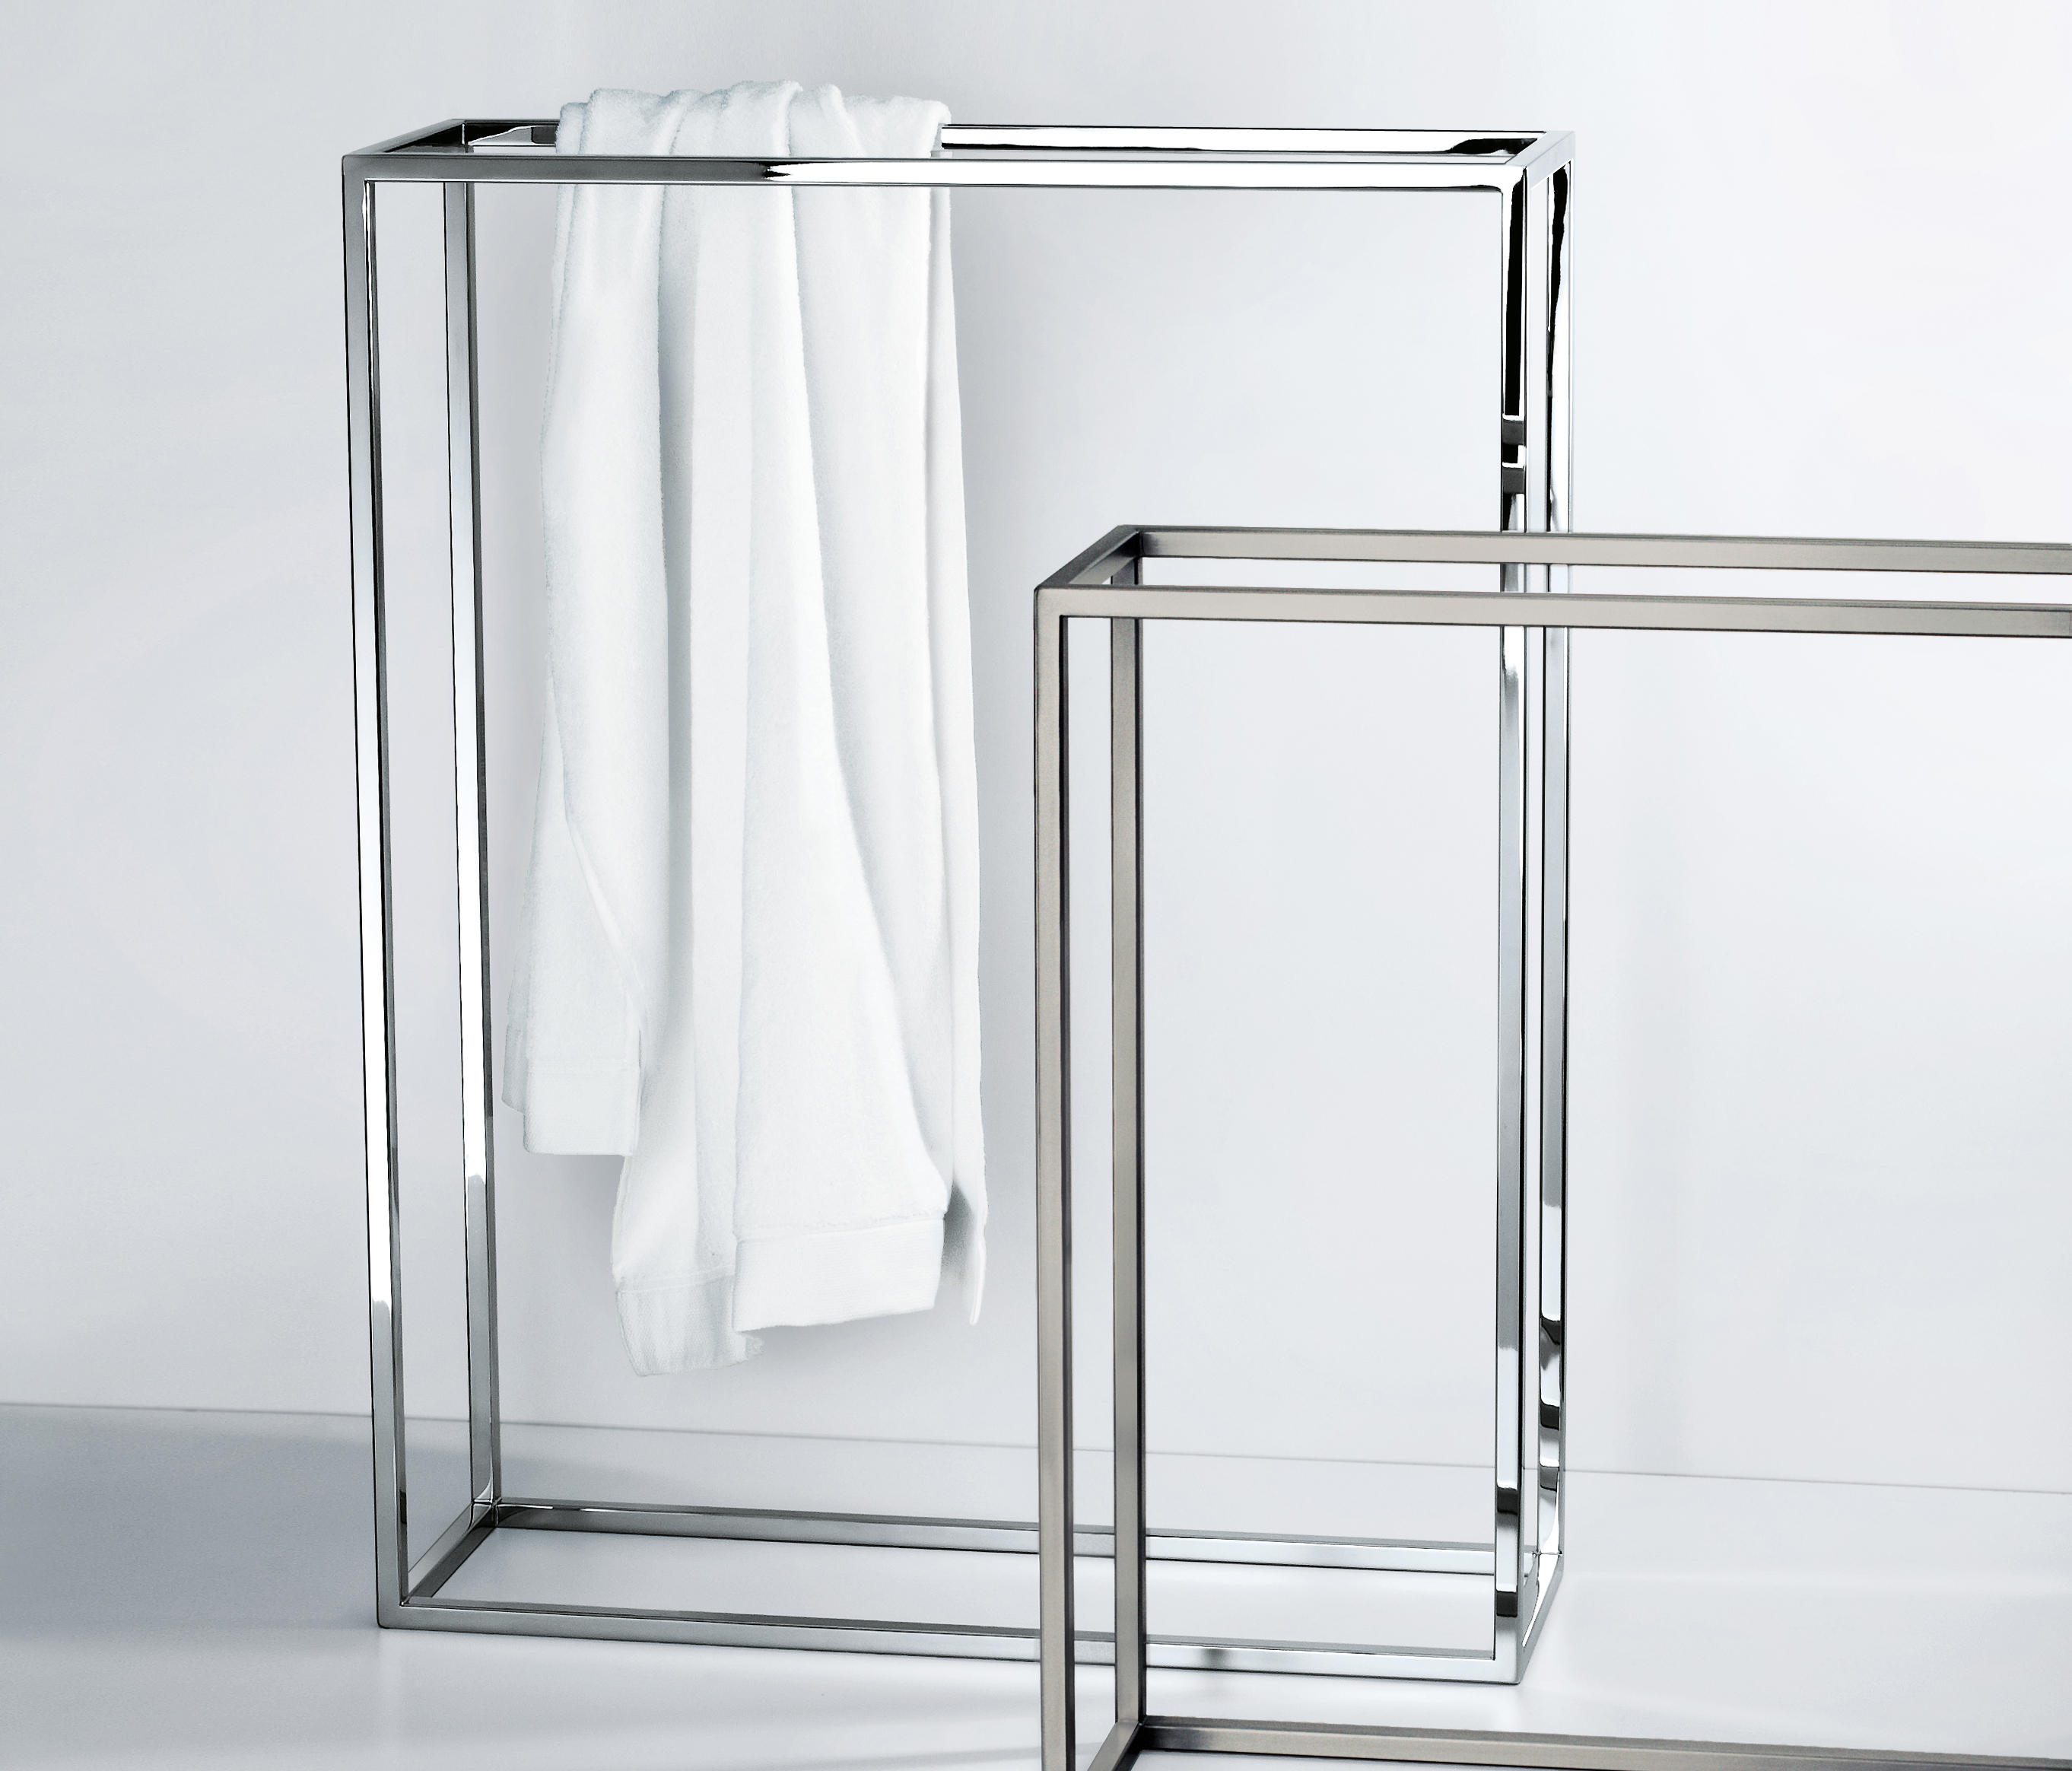 ht 40 towel rails from decor walther architonic. Black Bedroom Furniture Sets. Home Design Ideas